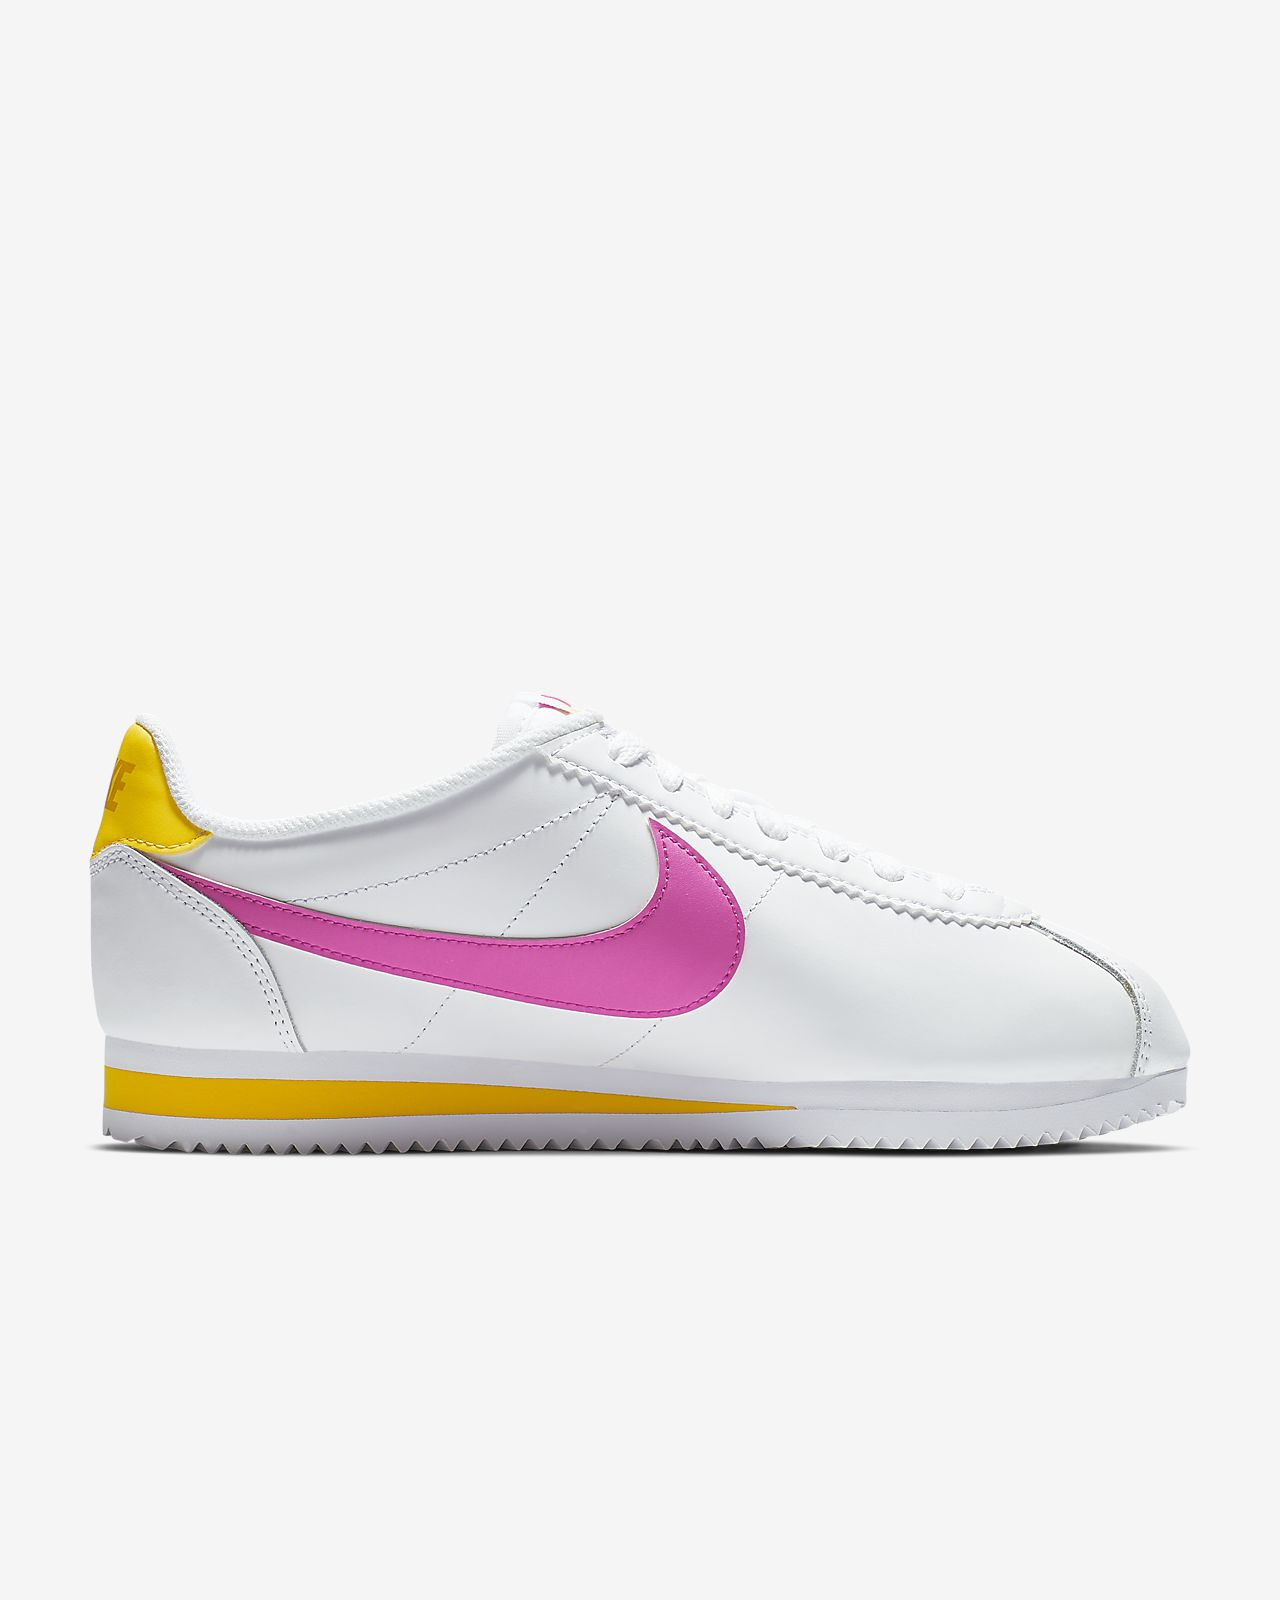 free shipping cb4a9 19e83 ... Chaussure Nike Classic Cortez pour Femme